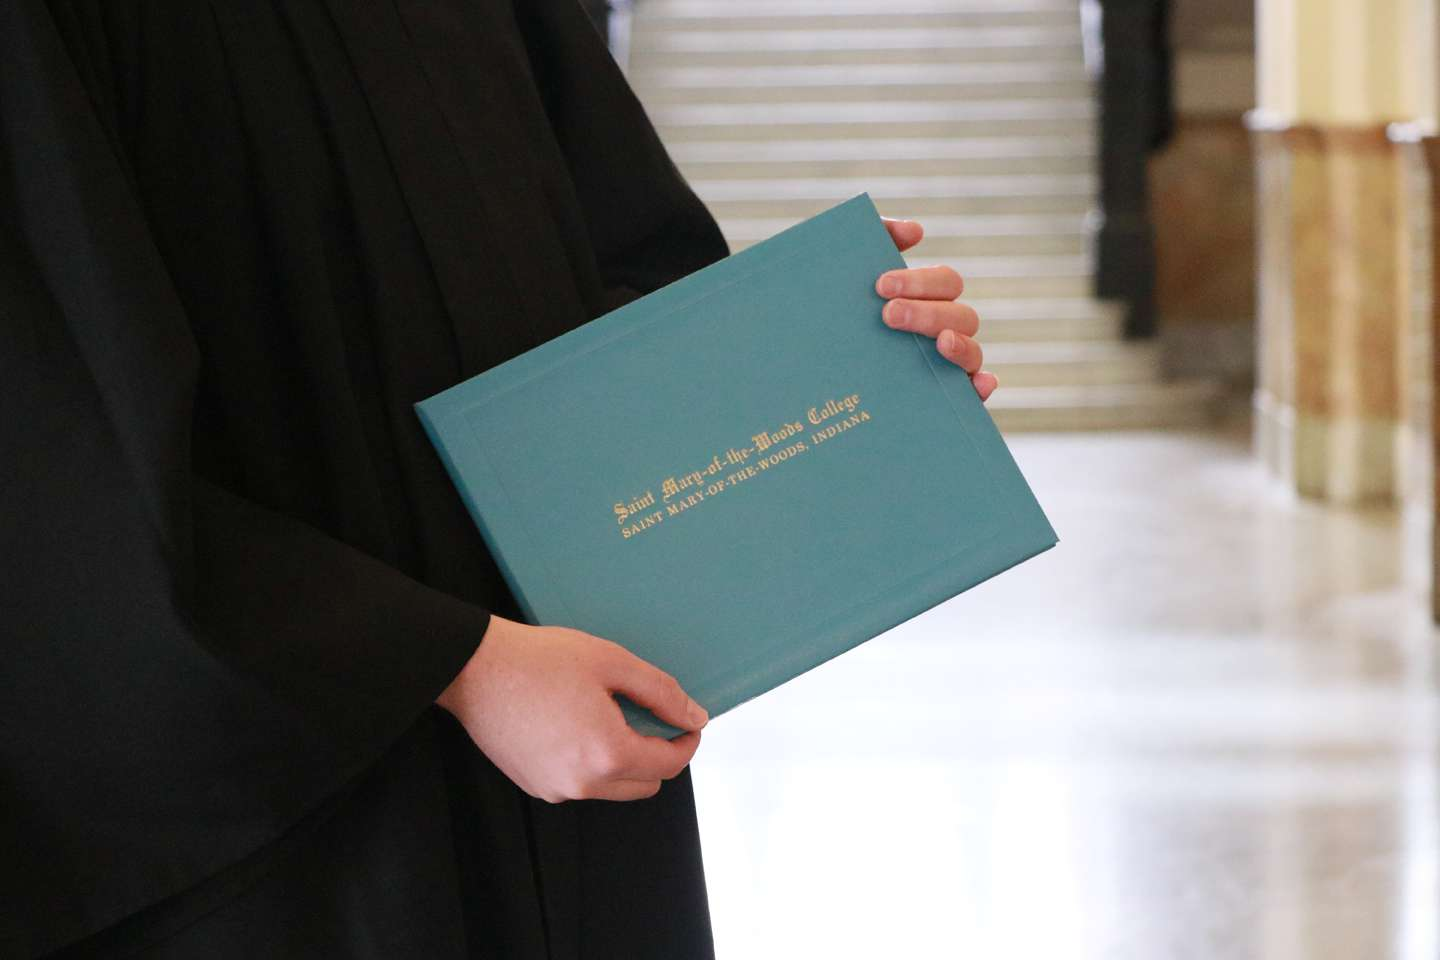 The hands of someone in a graduation gown holding a degree jacket that says Saint Mary-of-the-Woods College.